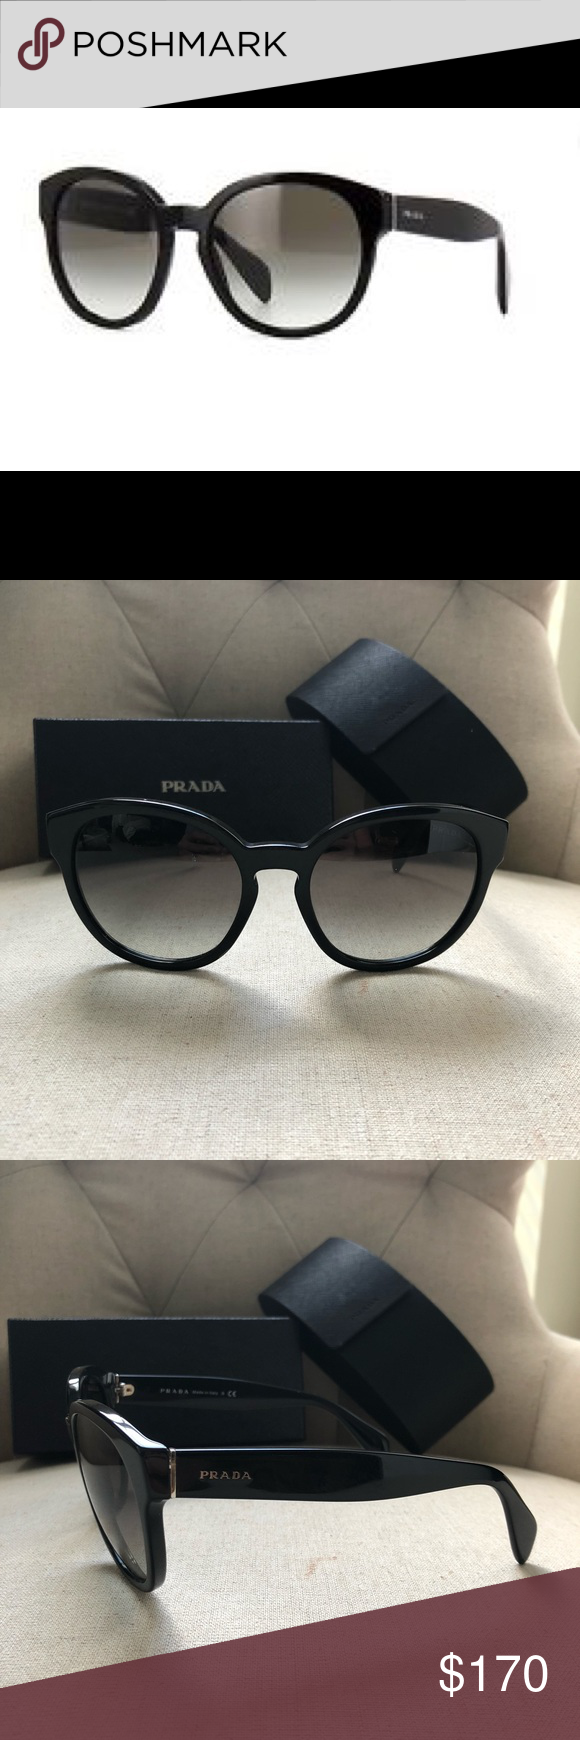 498cc912df174 ... uk prada spr 18r sunglasses sunglasses worn a few times bought from  nordstrom. small scuffing